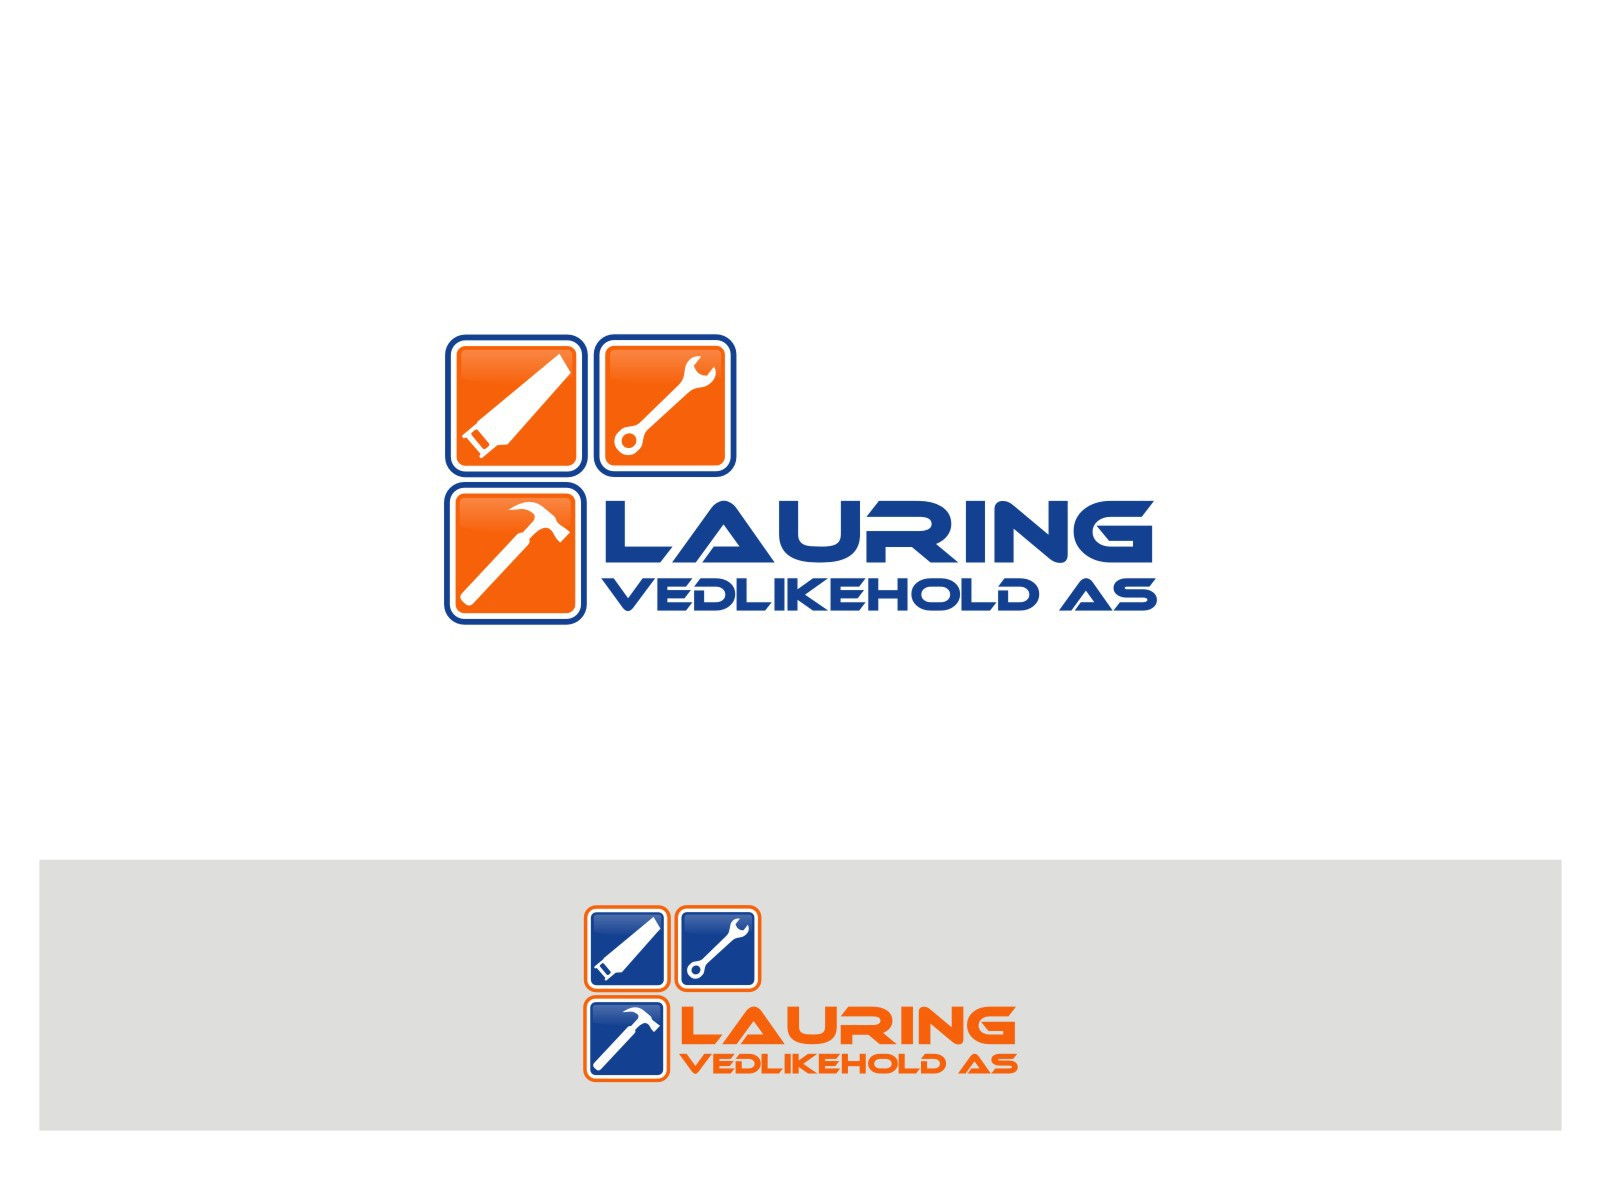 New logo wanted for Lauring Vedlikehold AS